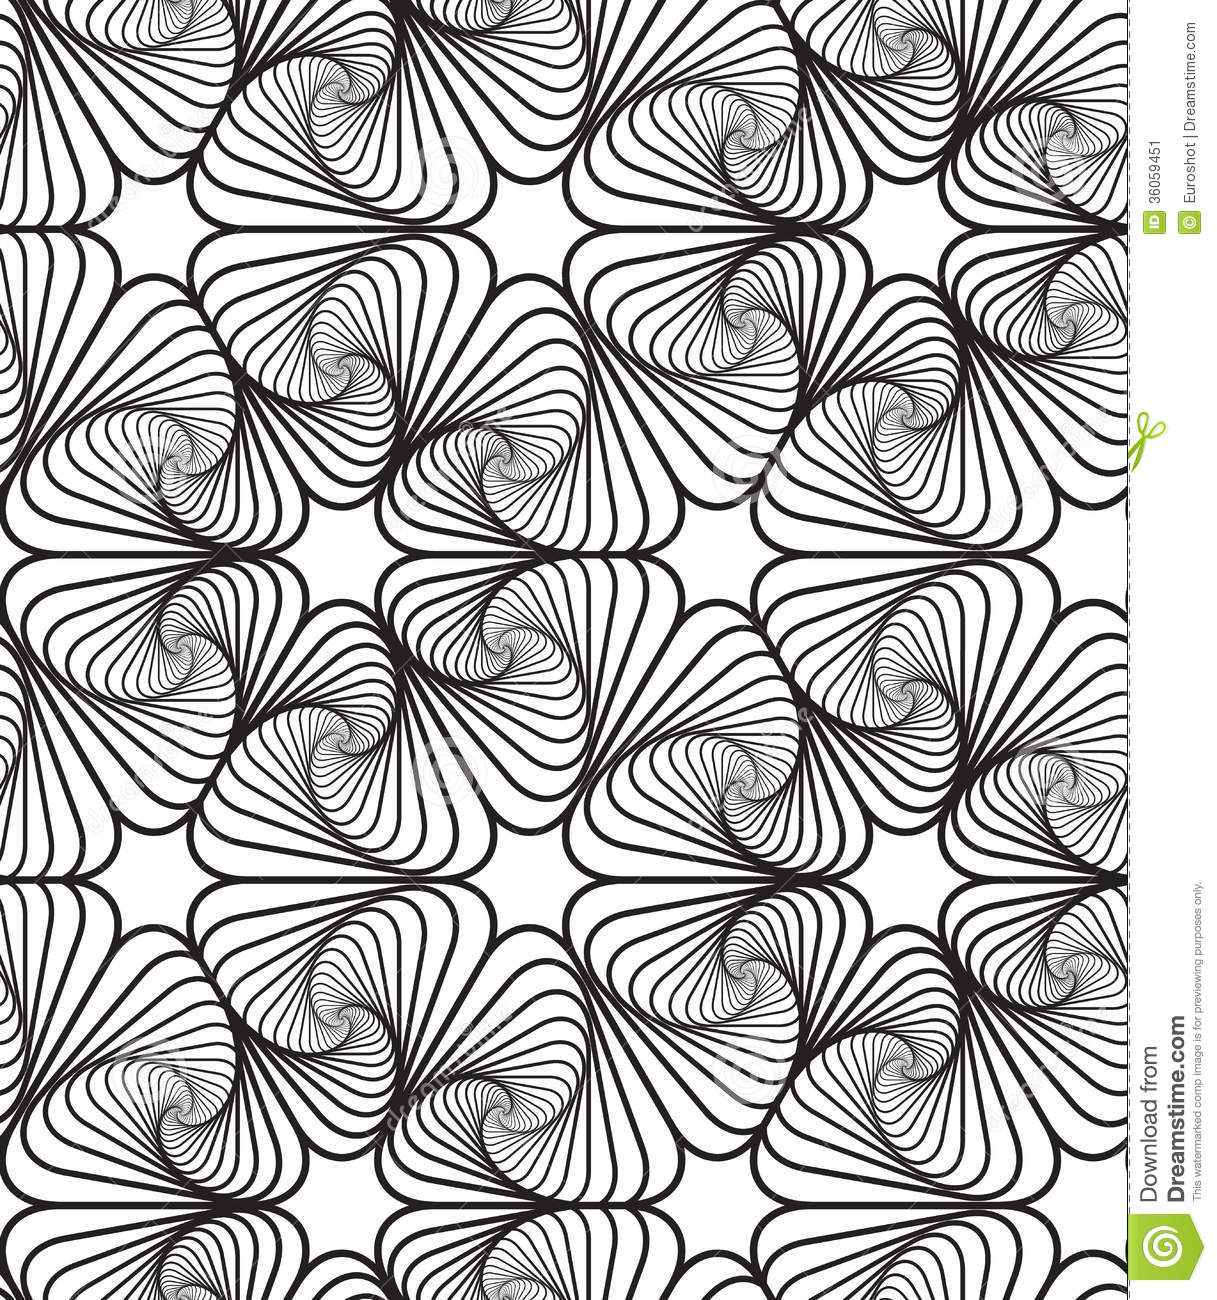 Line Drawing Backgrounds : Black and white op art design vector seamless pattern